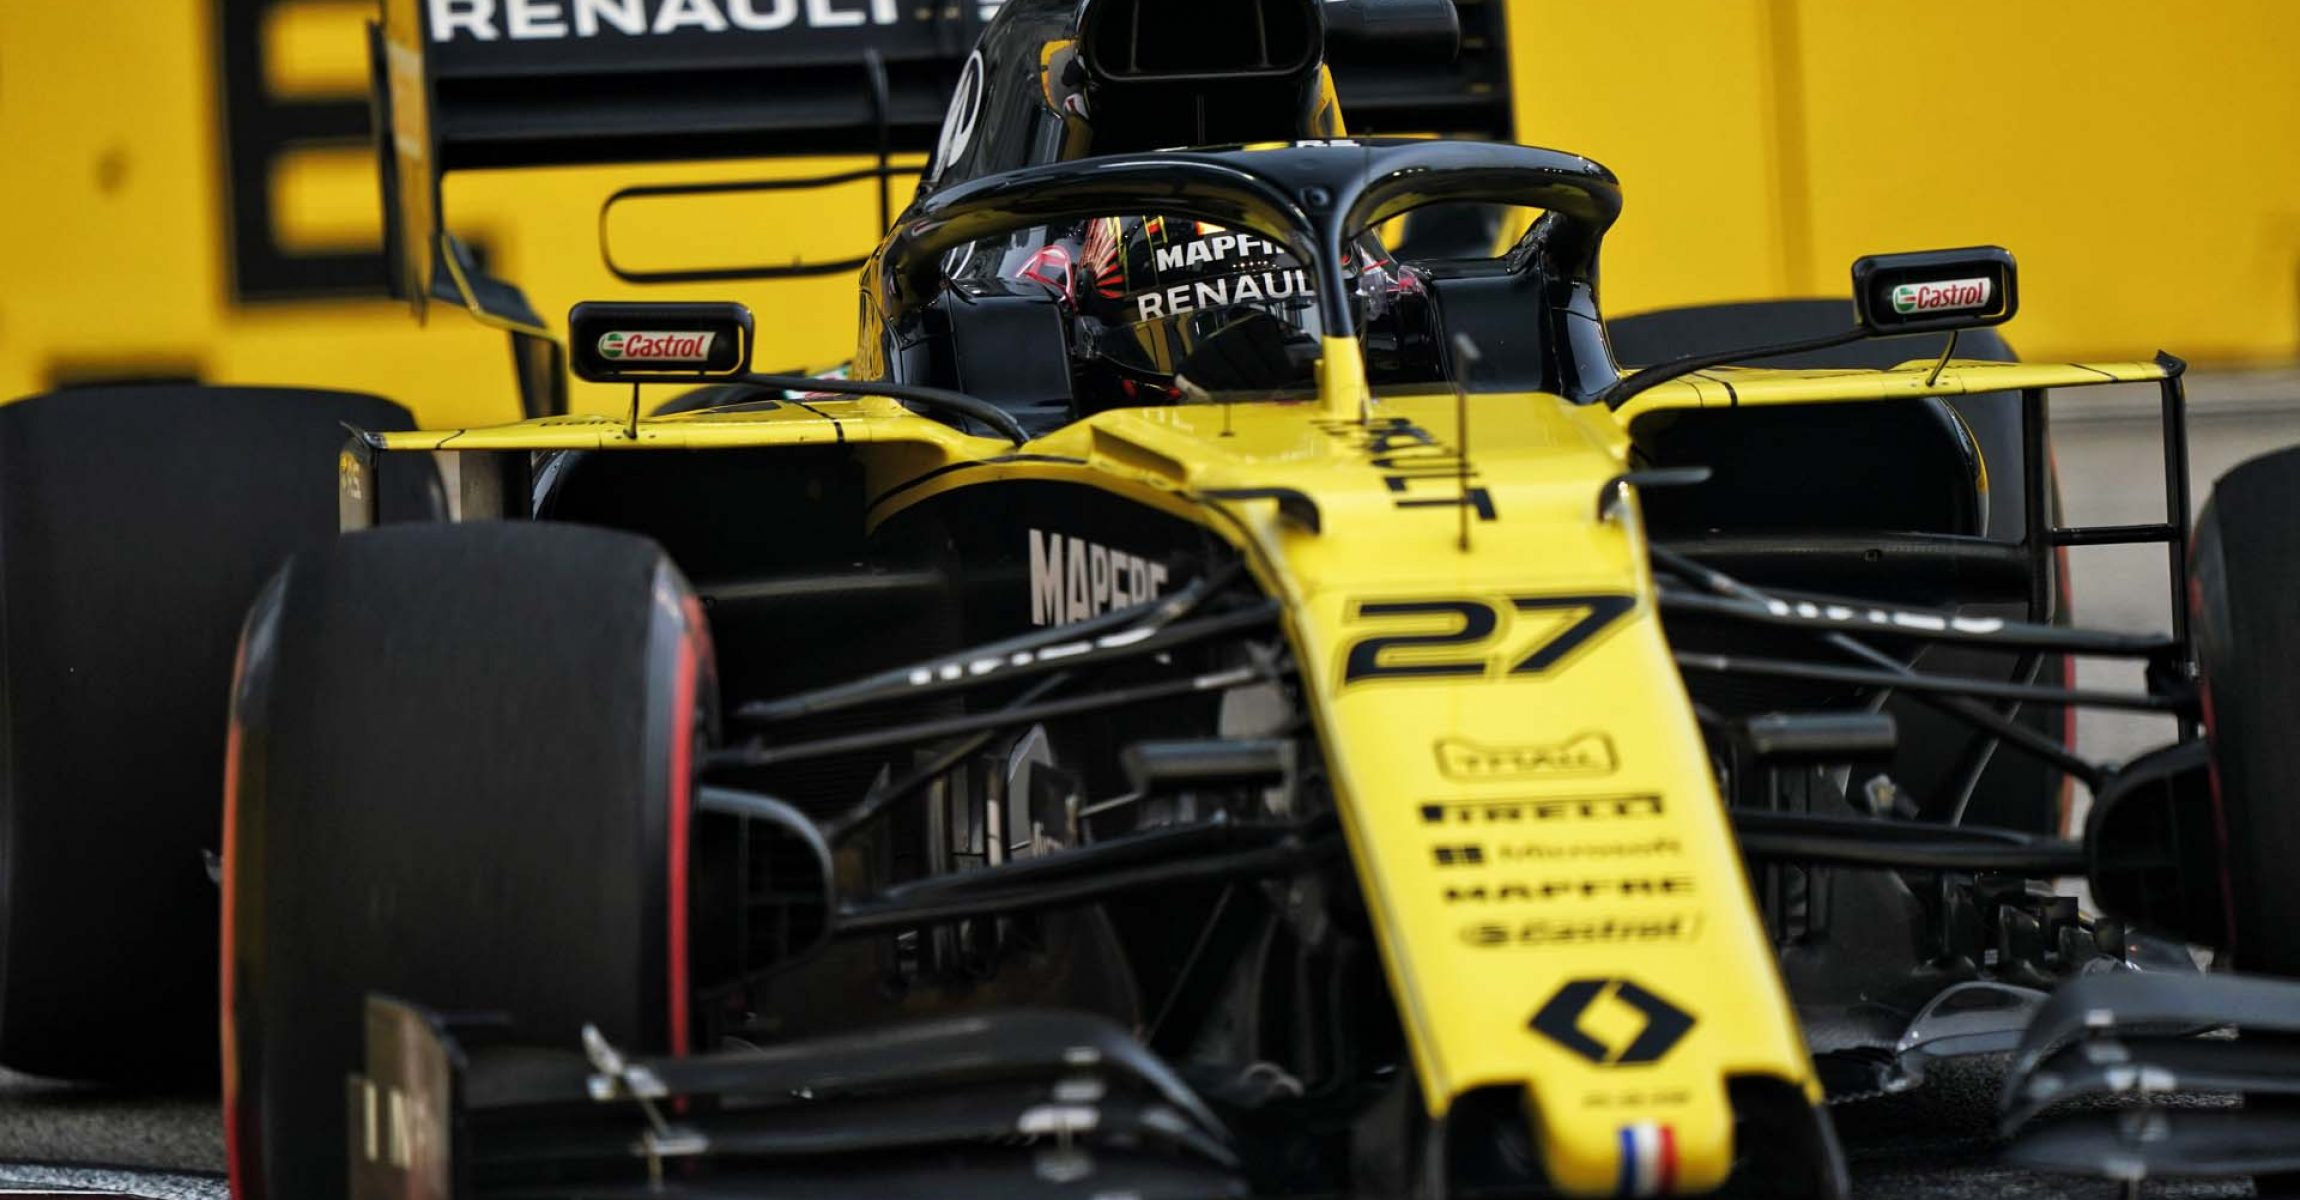 Nico Hülkenberg (GER) Renault F1 Team RS19. Singapore Grand Prix, Friday 20th September 2019. Marina Bay Street Circuit, Singapore.